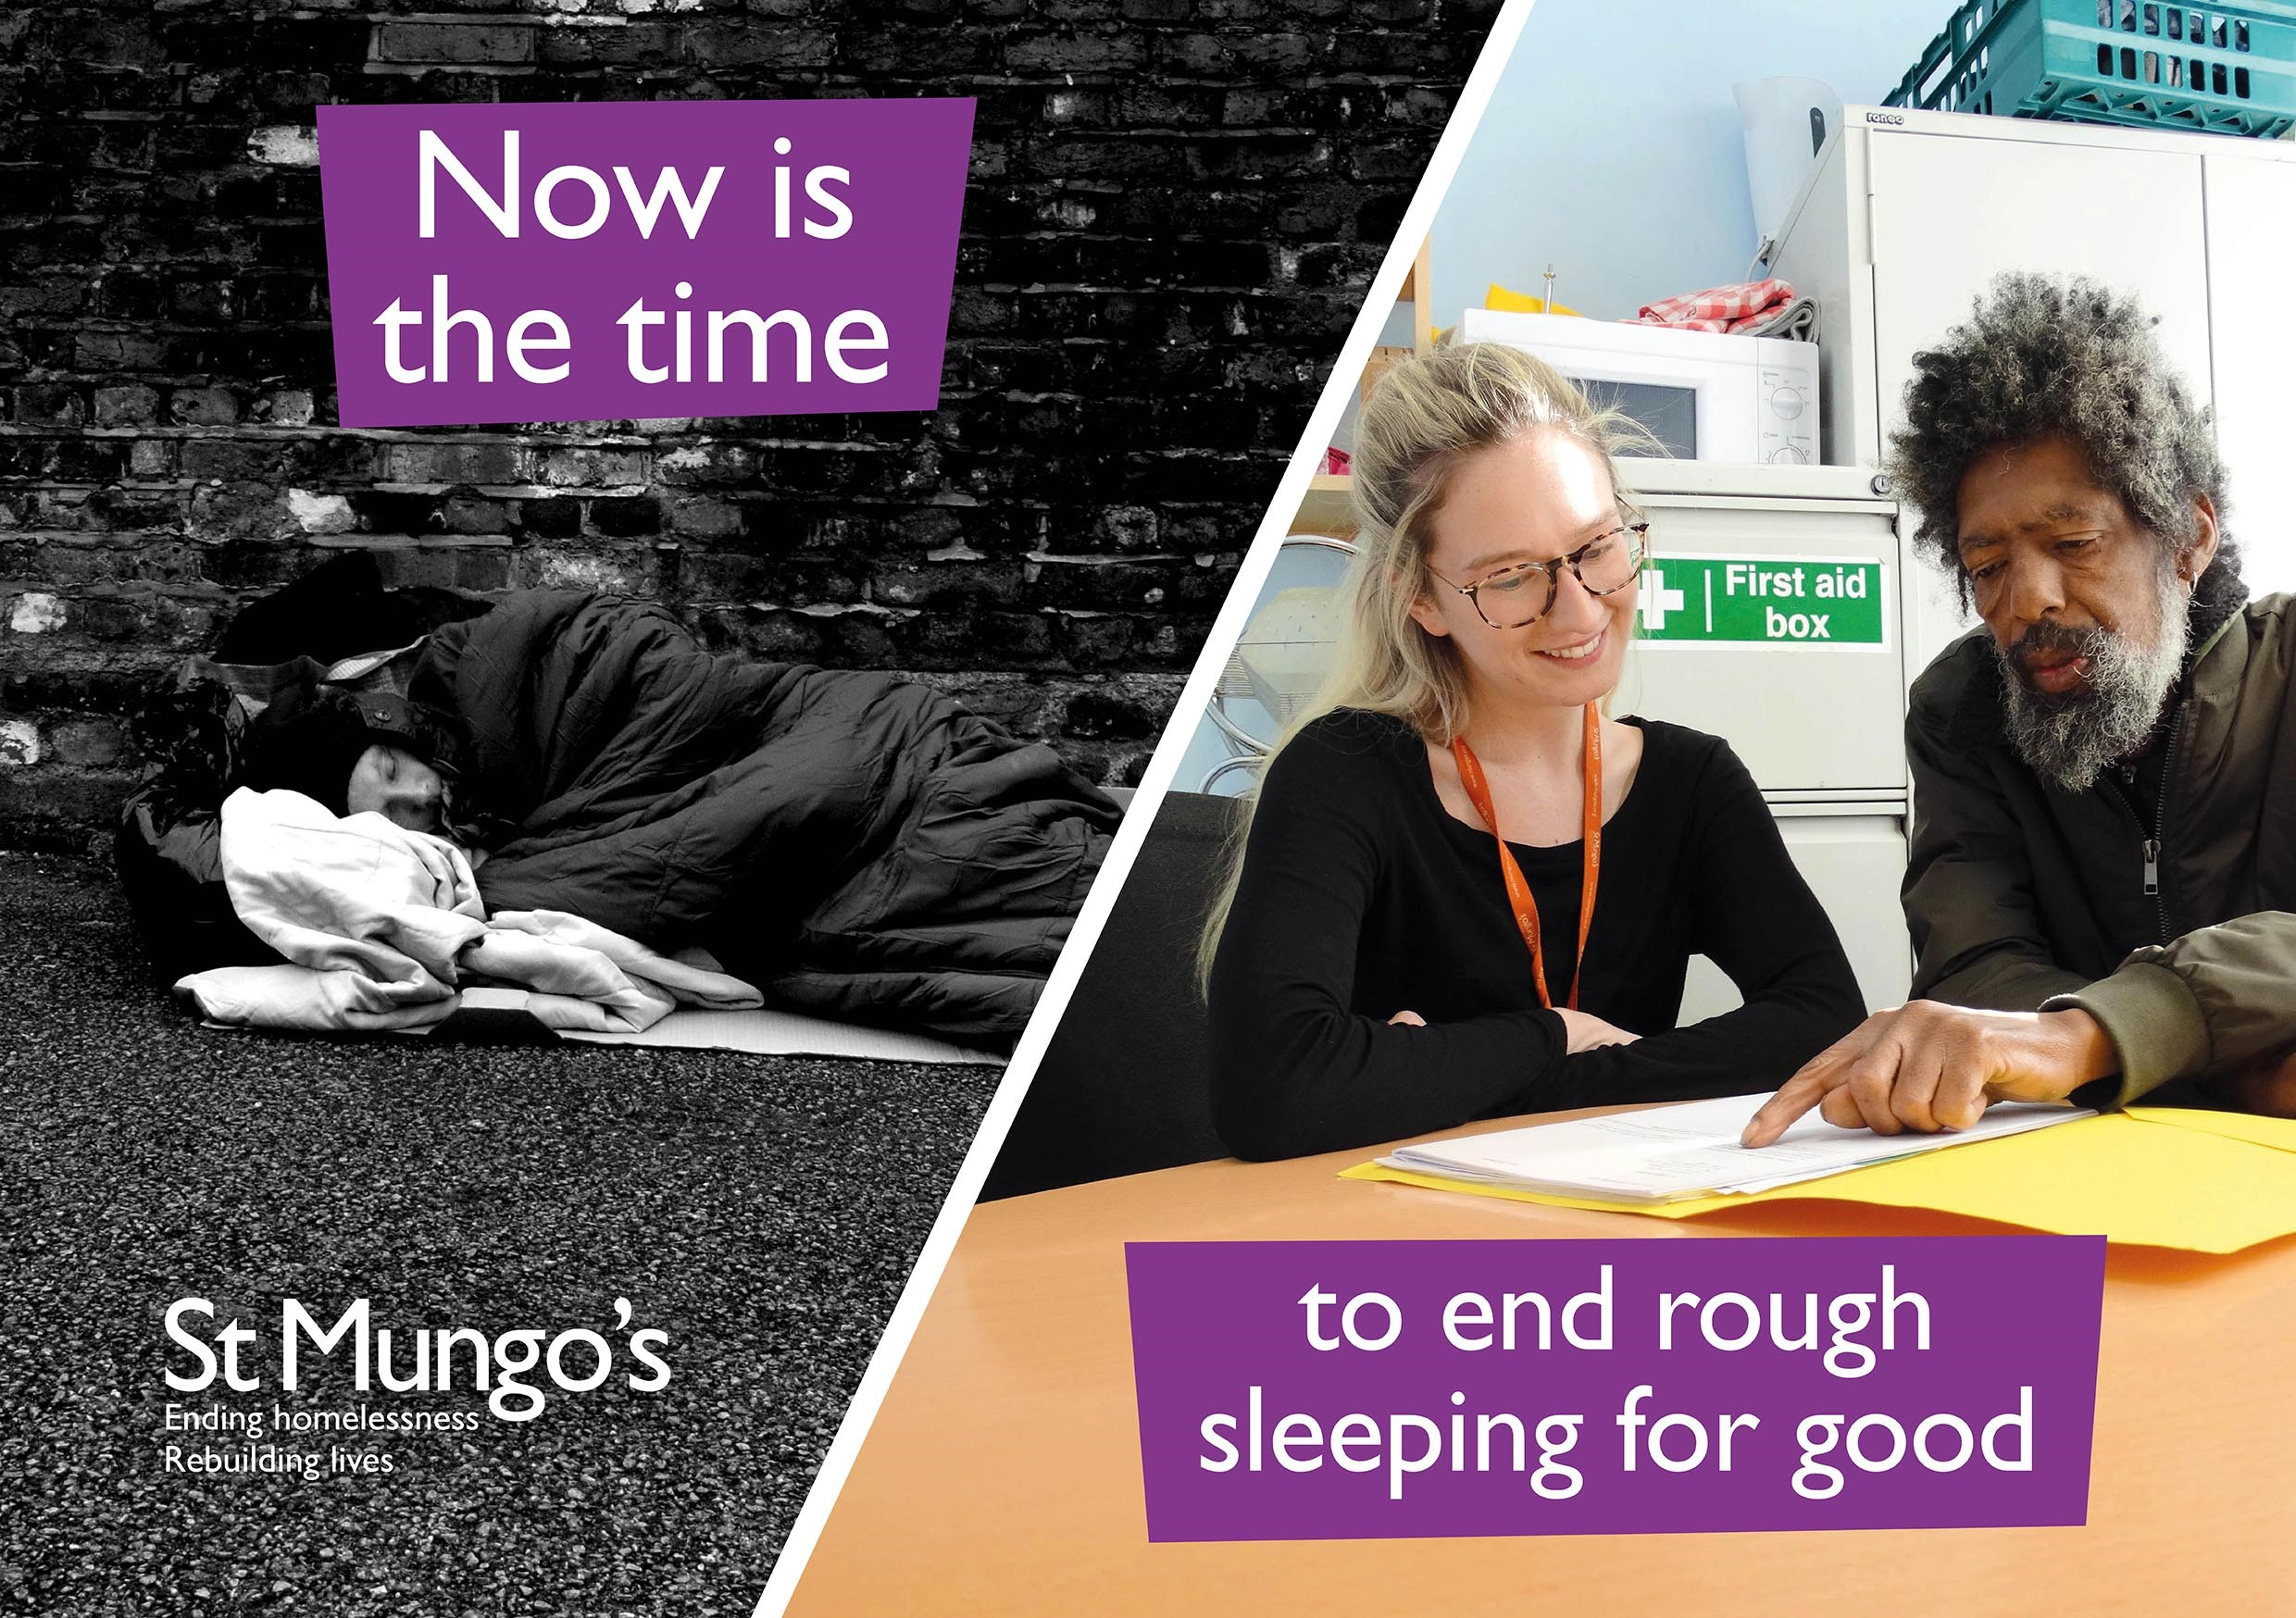 An image of a person sleeping rough alongside an image of a support worker providing support to a St Mungo's client